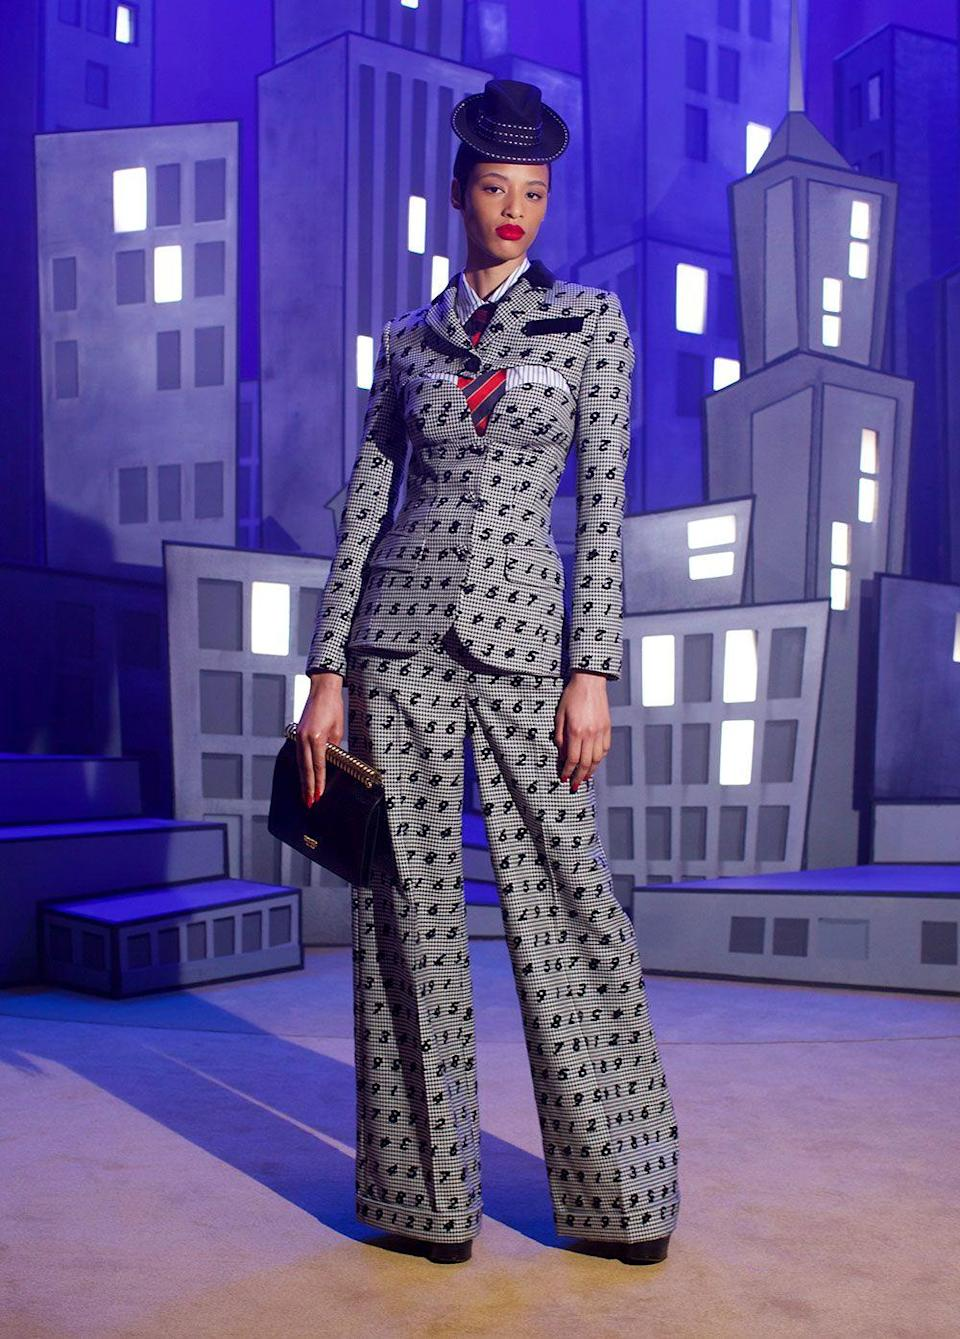 <p>A Moschino show is a <em>show</em>, an experience, a prance through different worlds and scenarios. For the latest tour, Jeremy Scott was inspired by George Cukor's <em>The Women</em> and set out to wardrobe the entire panoply of female tropes. There are boss-heroines in tailored pinstripes; prairie housewives in calico and paisley (plus some potato sacks for good measure); adventurers in safari garb; and, of course, plenty of sirens. Never one to shy away from drama or attention-grabbing elements, Moschino was also stacked with big-name models (like Hailey Beiber, Amber Valletta, Winnie Harlow, Dita Von Teese). It's par for the course at the label, but also feels especially necessary given the entire season is inspired by scene-stealing women.<em>—Leah Melby Clinton</em></p>